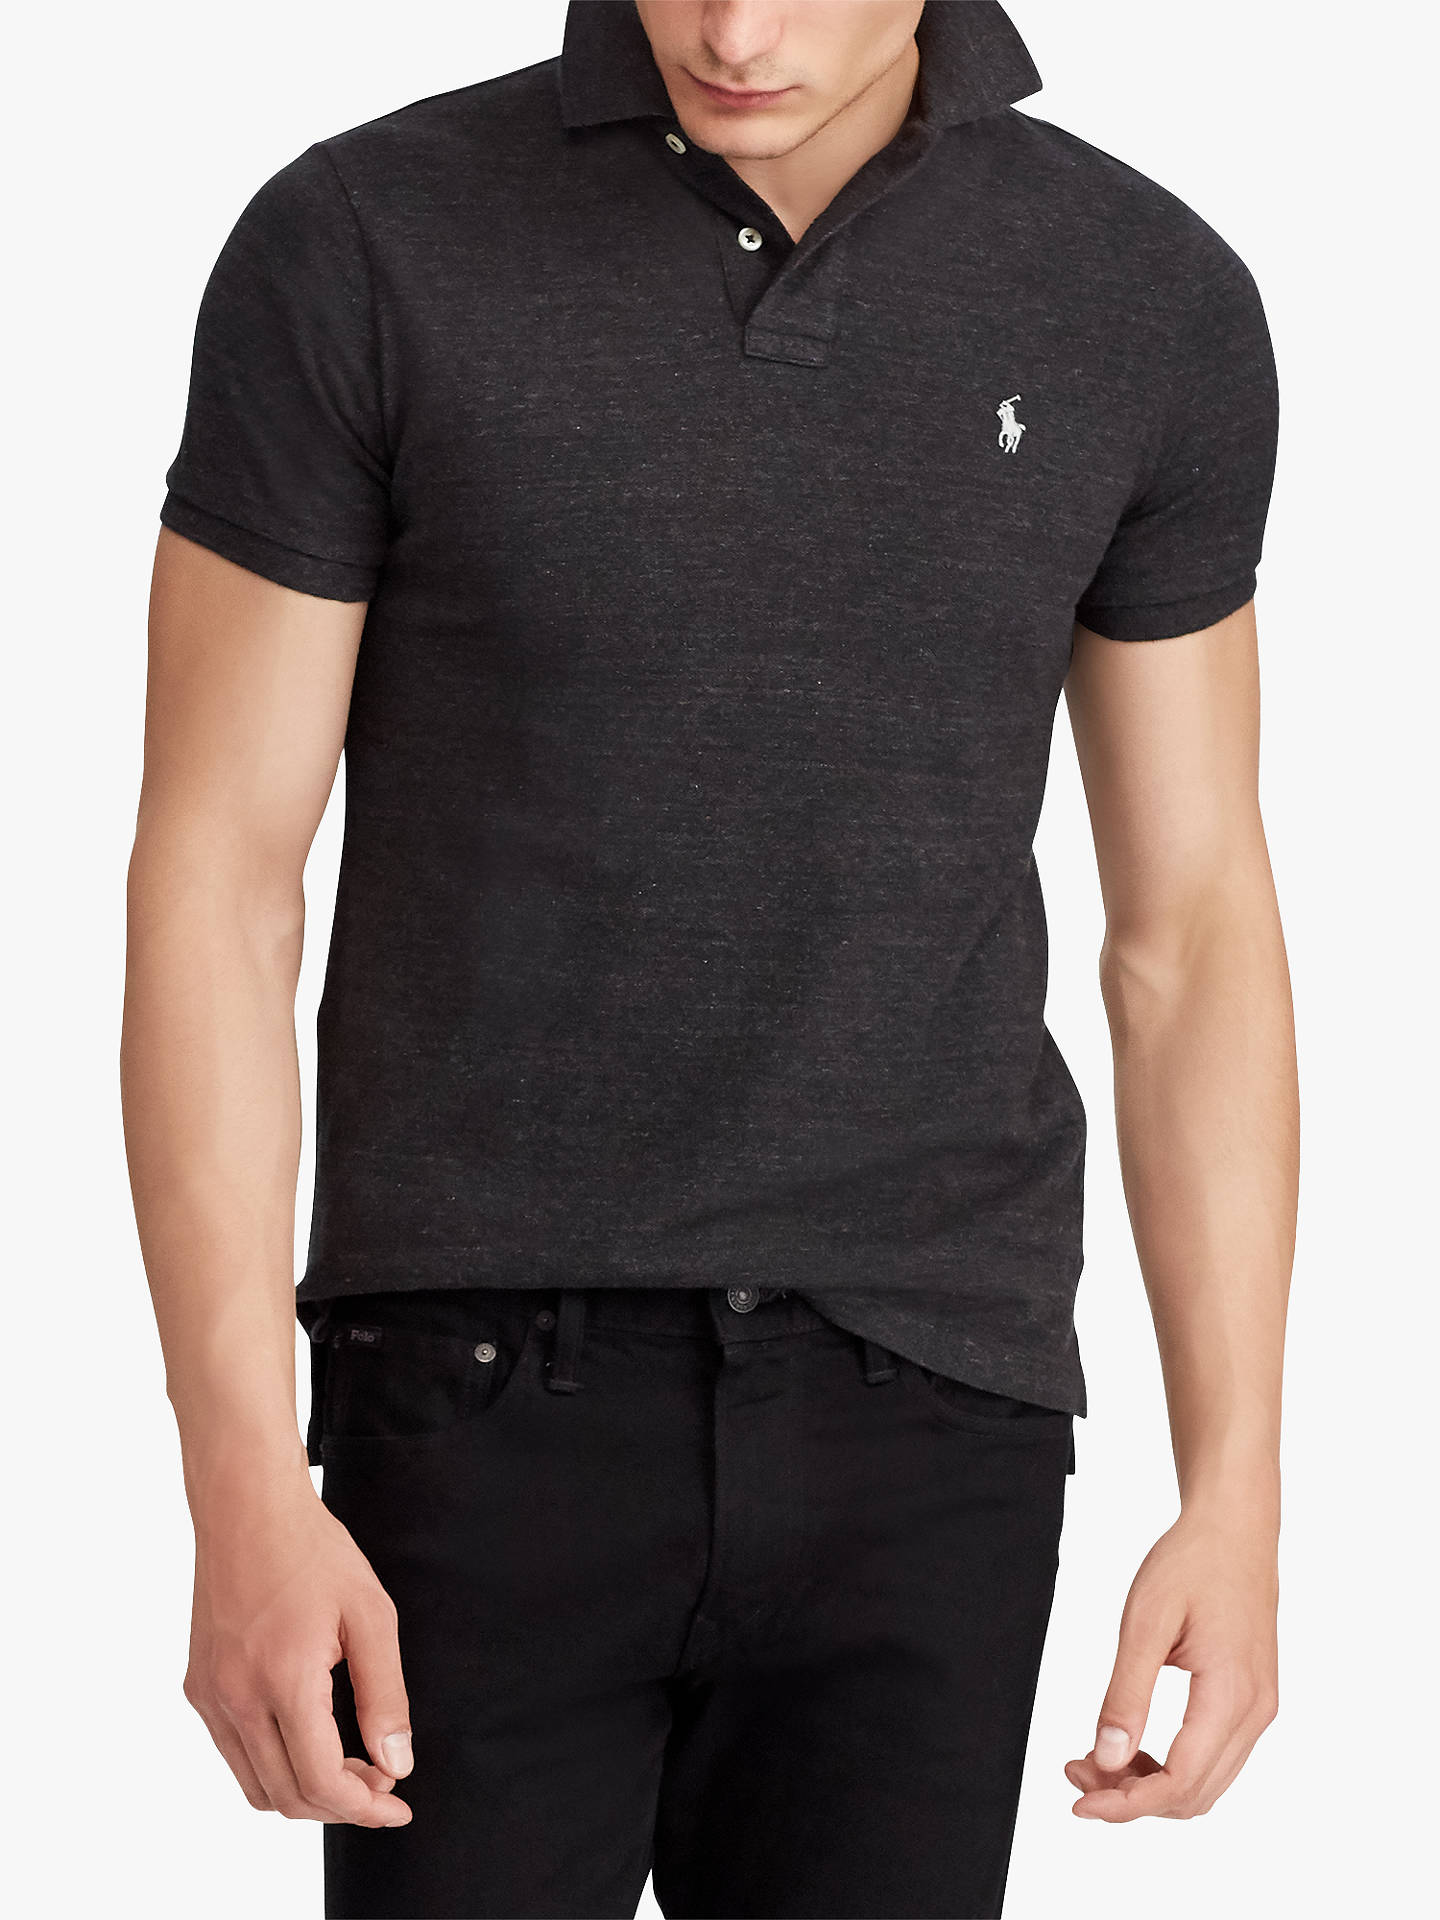 72fc4350f1d Buy Polo Ralph Lauren Custom Slim Fit Mesh Polo Shirt